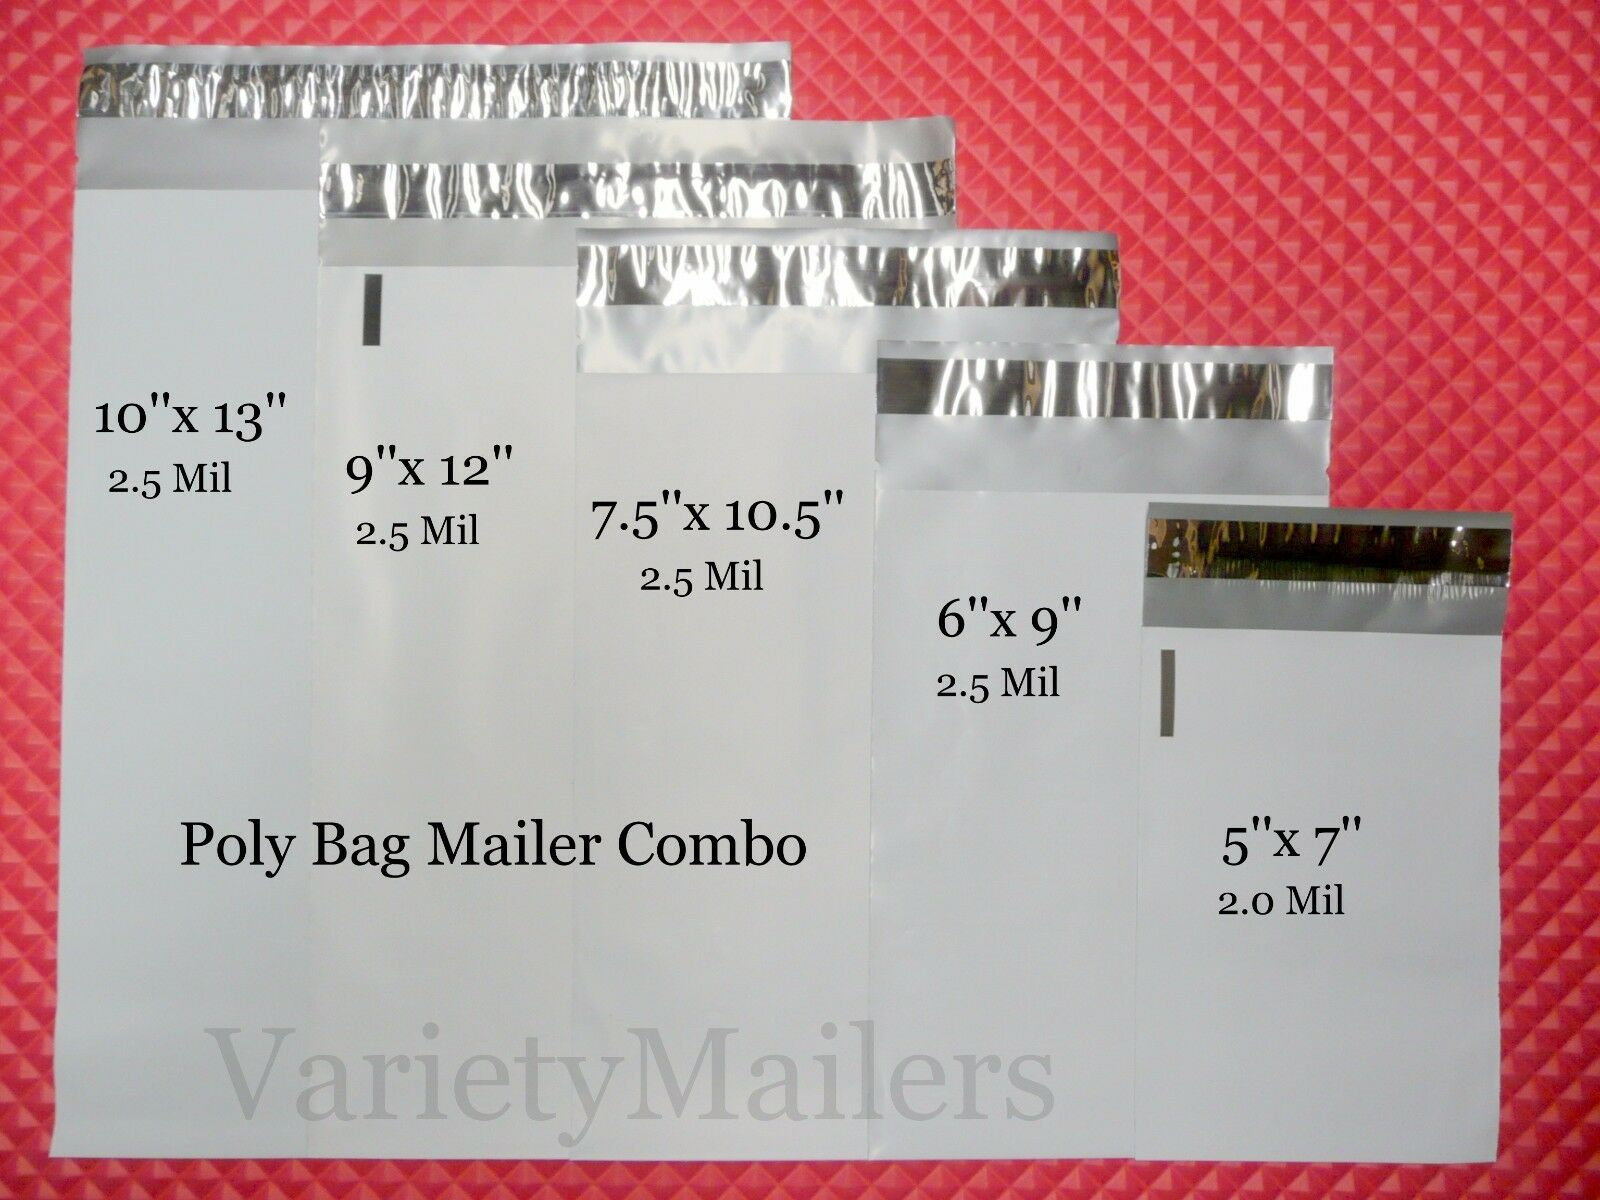 mailing envelope sizes